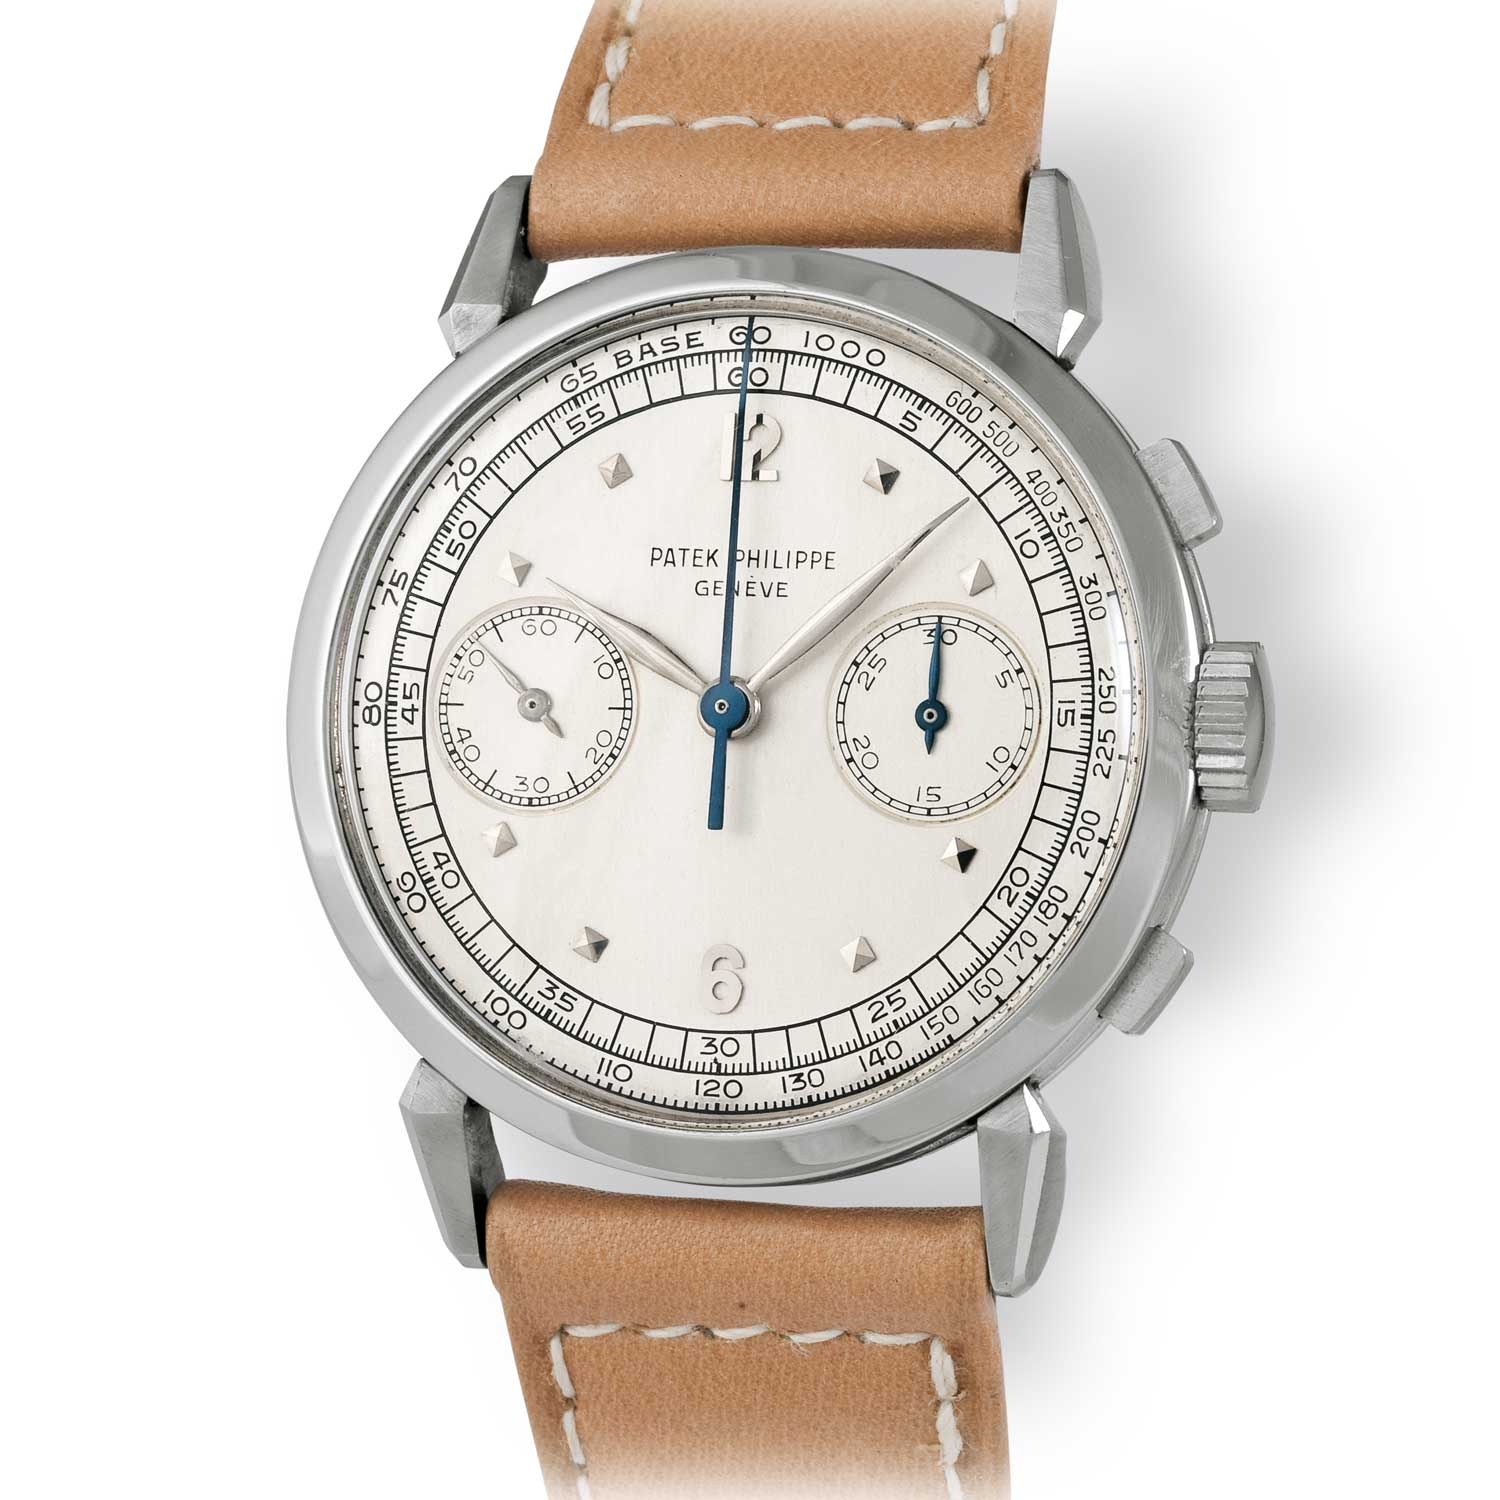 Patek Philippe ref. 1579 steel chronograph with Arabic numerals and square markers (Image: John Goldberger)